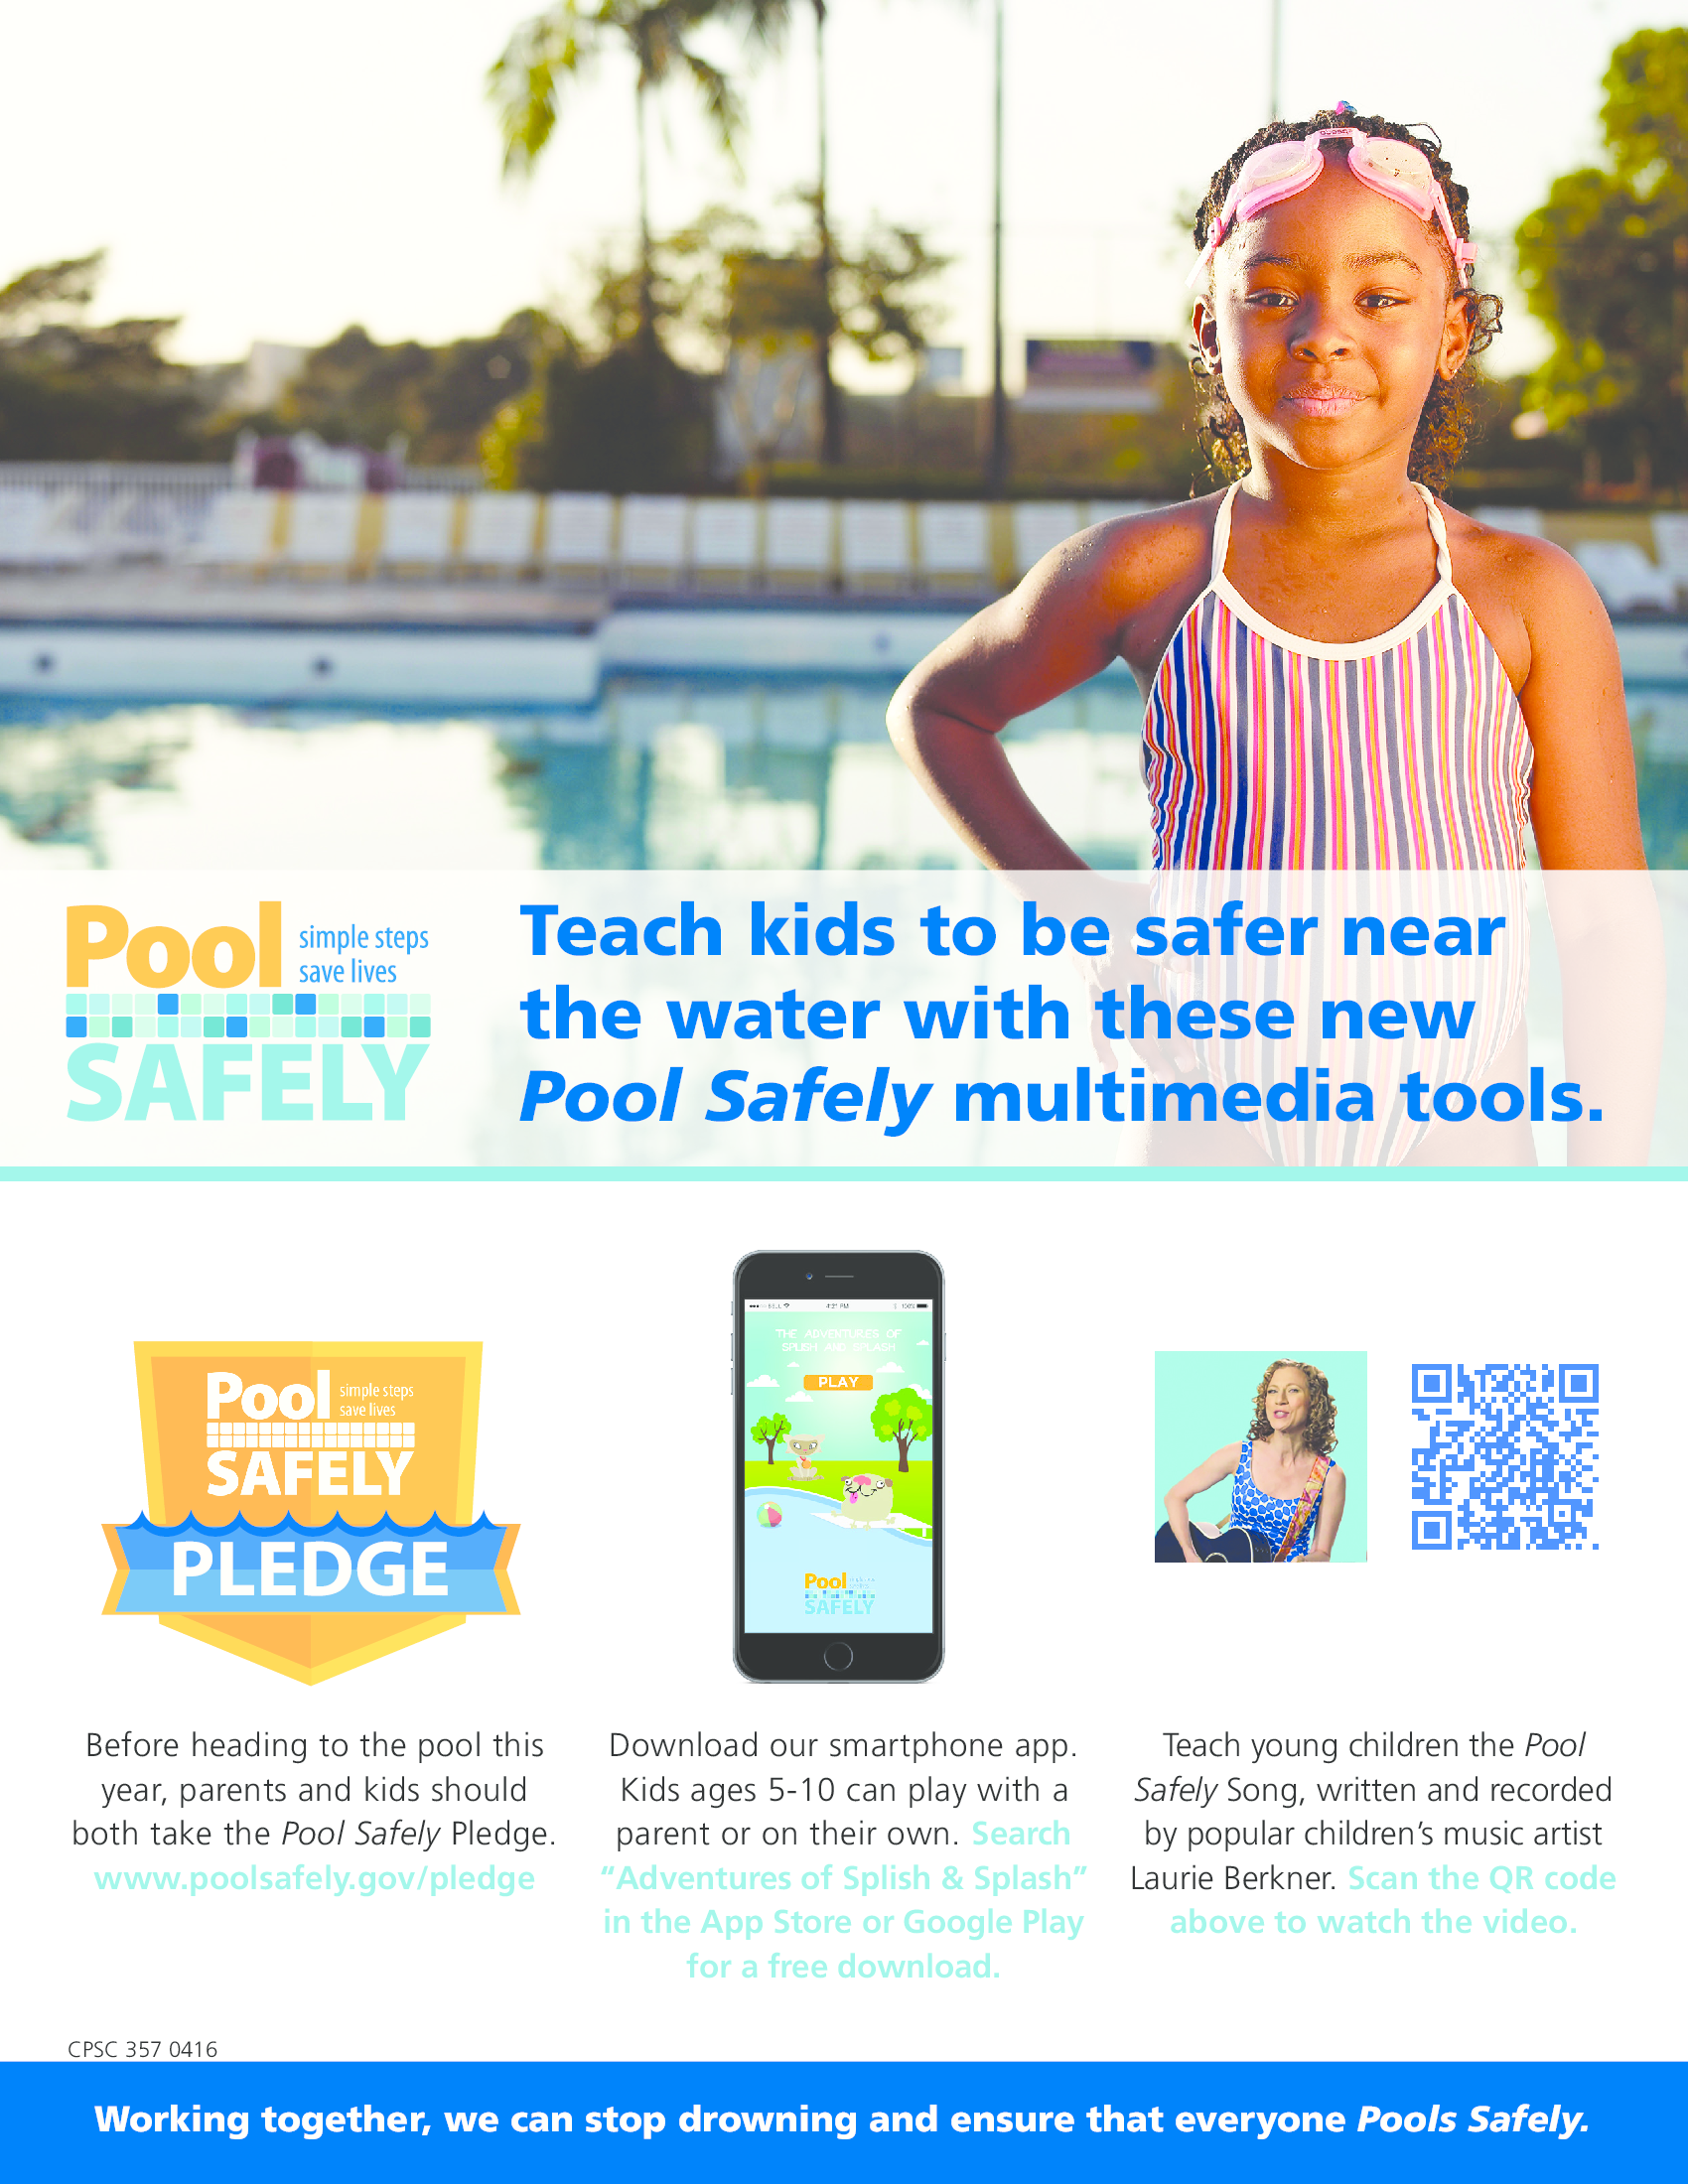 flyer with information about how to keep kids safer near the water.